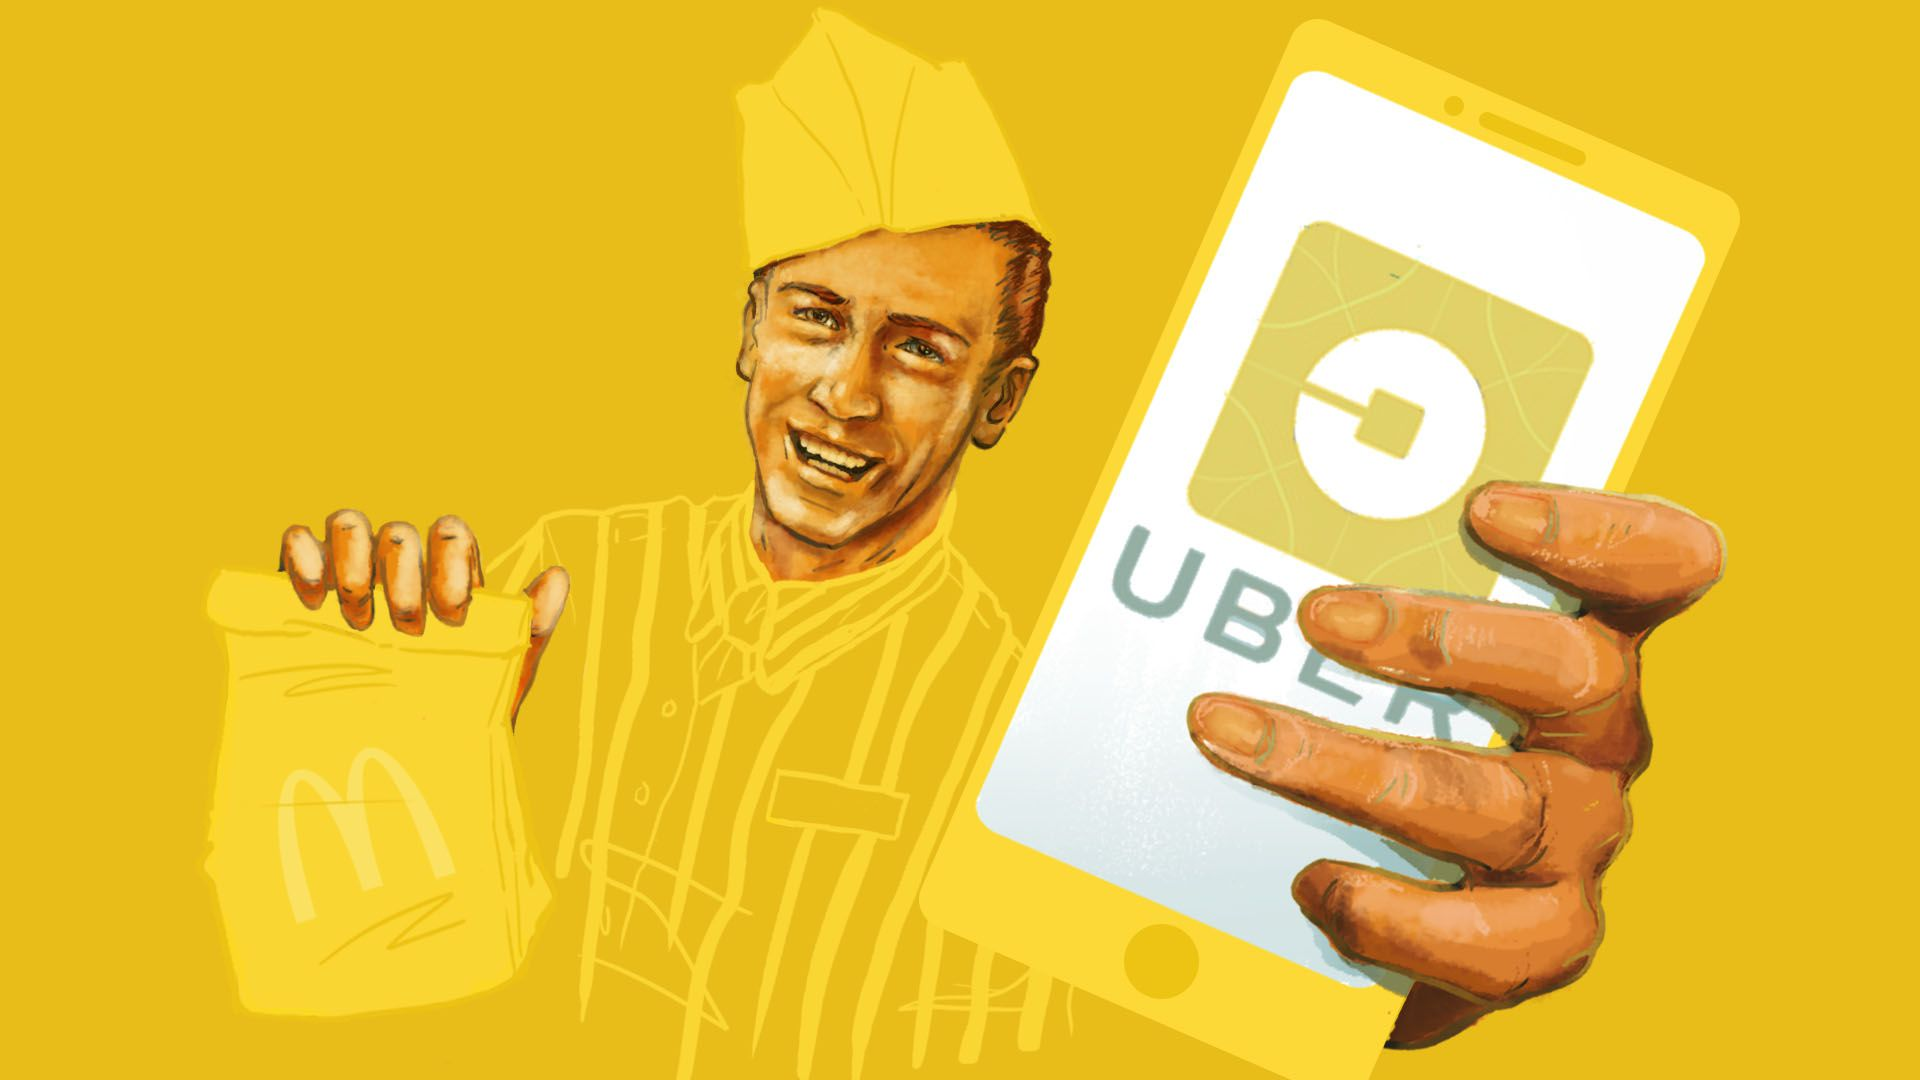 Illustration of man holding a McDonald's bag and a cell phone with the Uber app